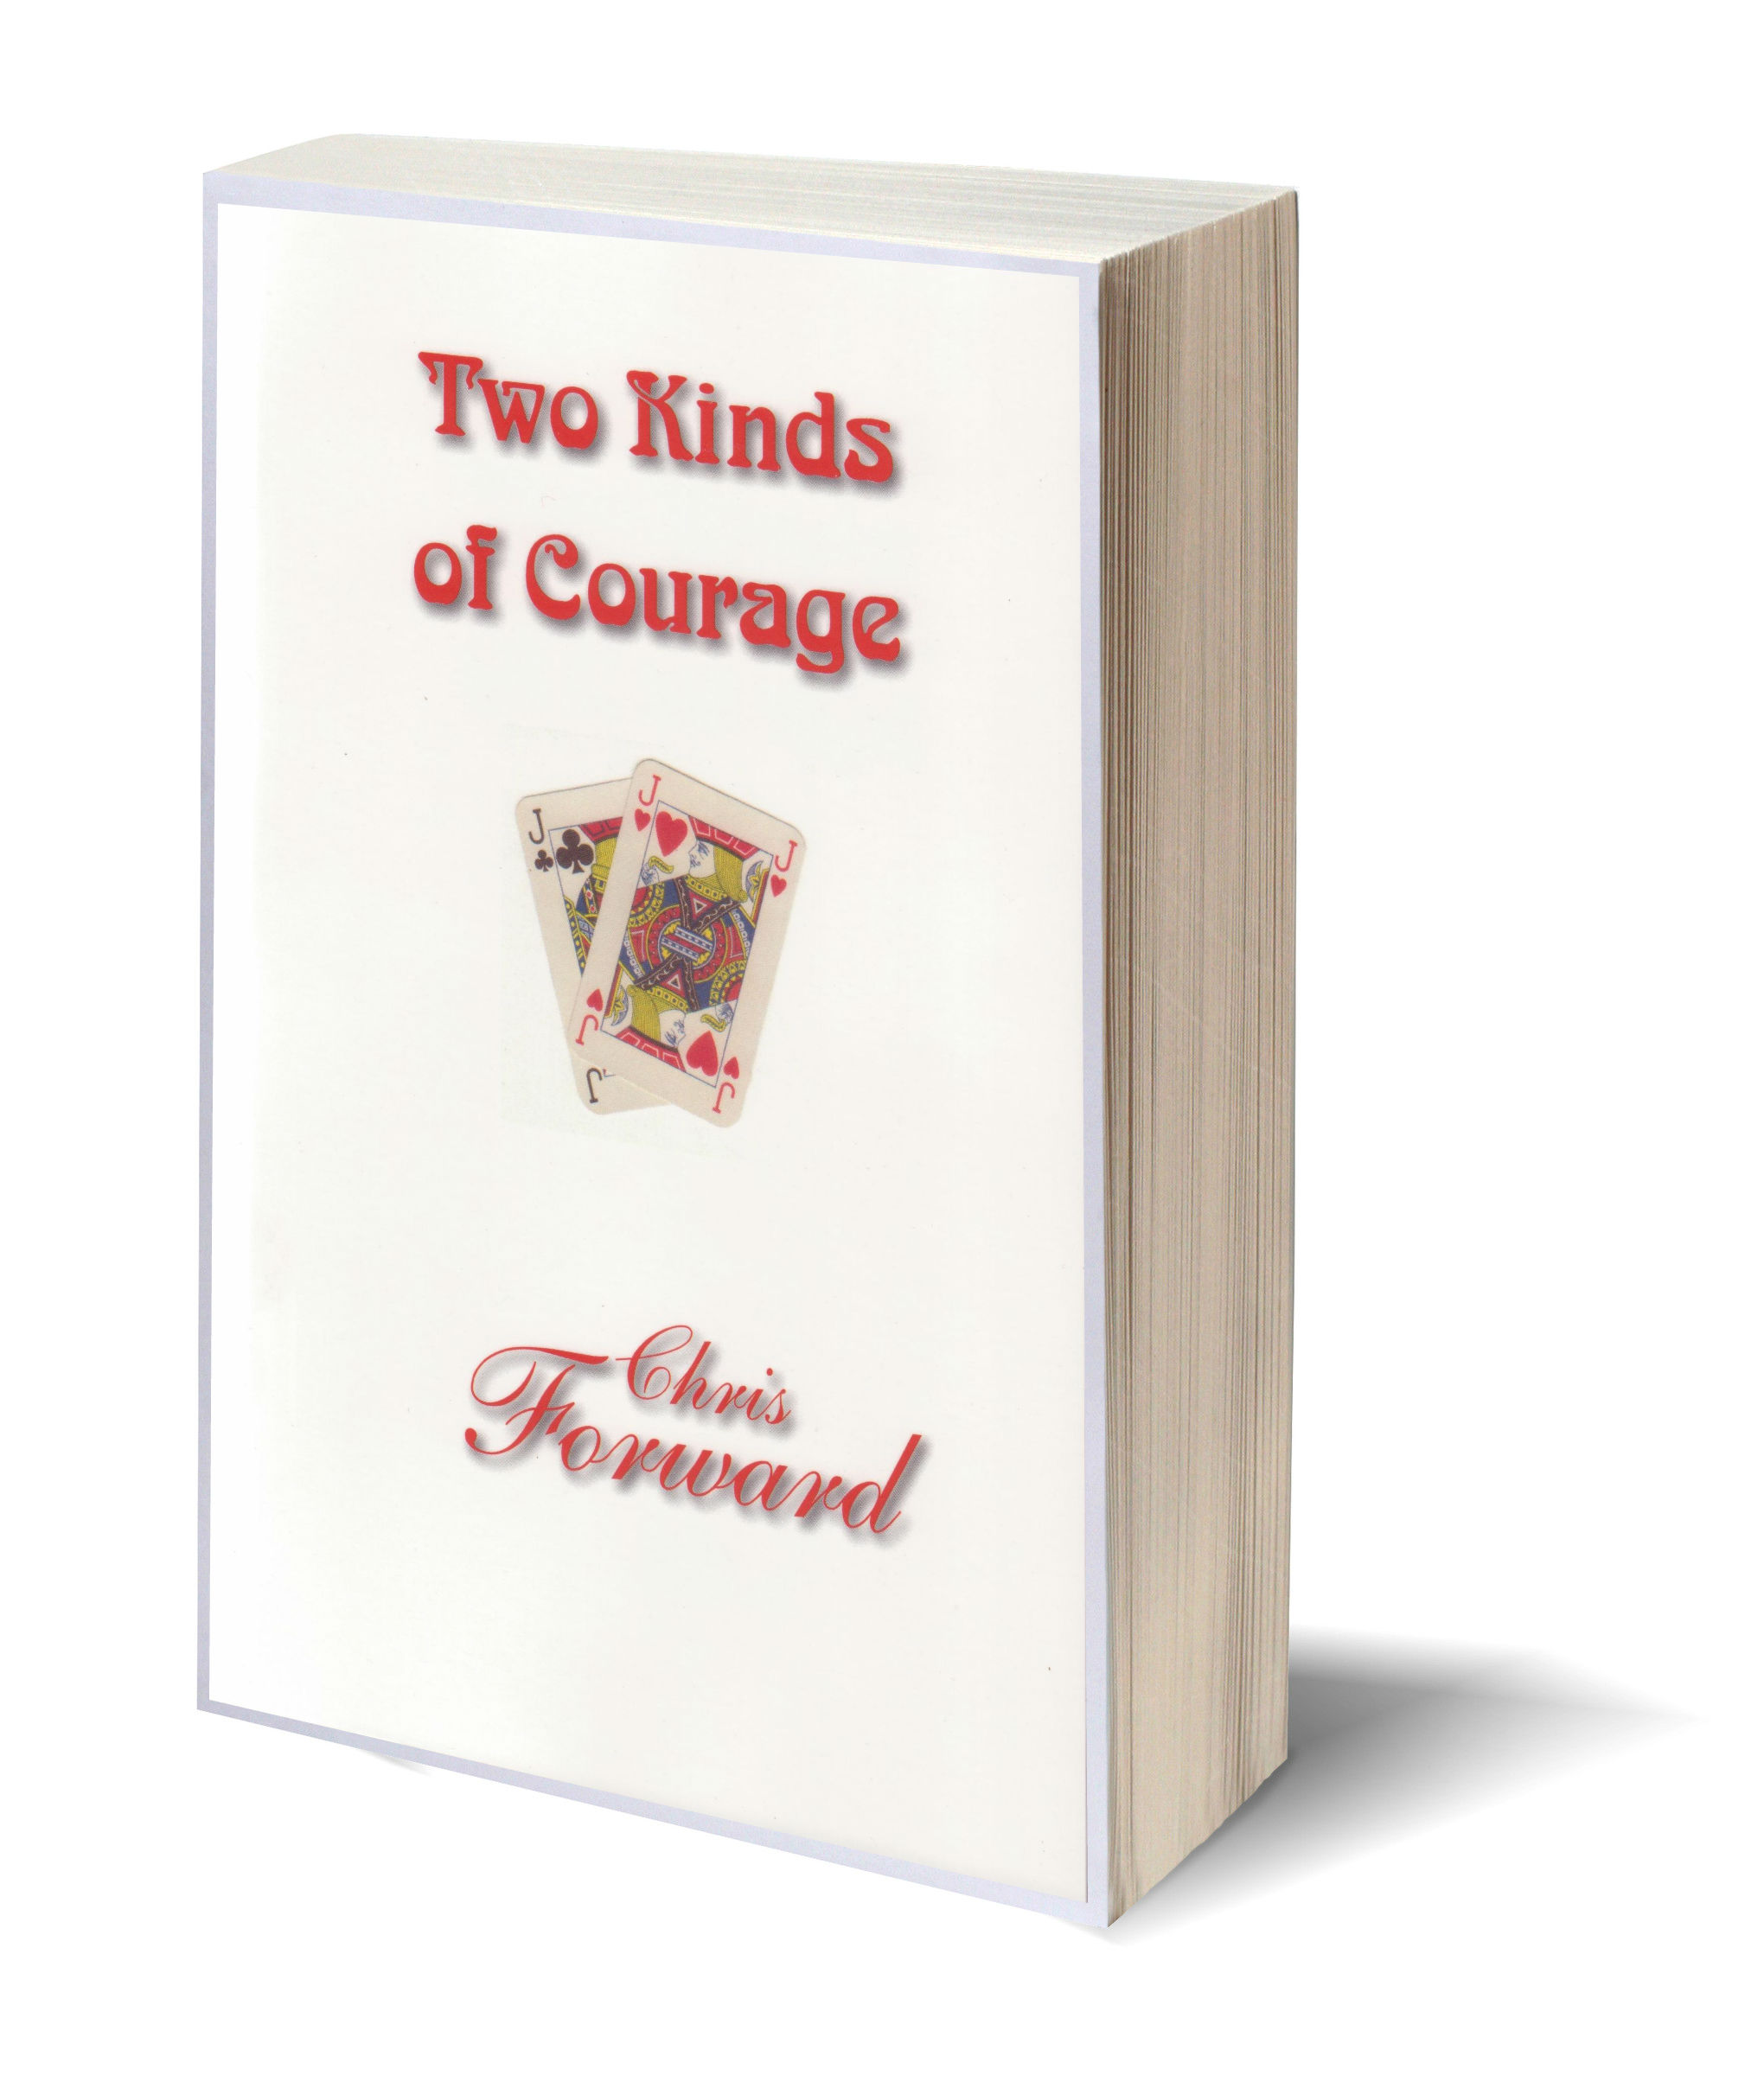 Two Kinds of Courage 3D-Book-Template.jpg